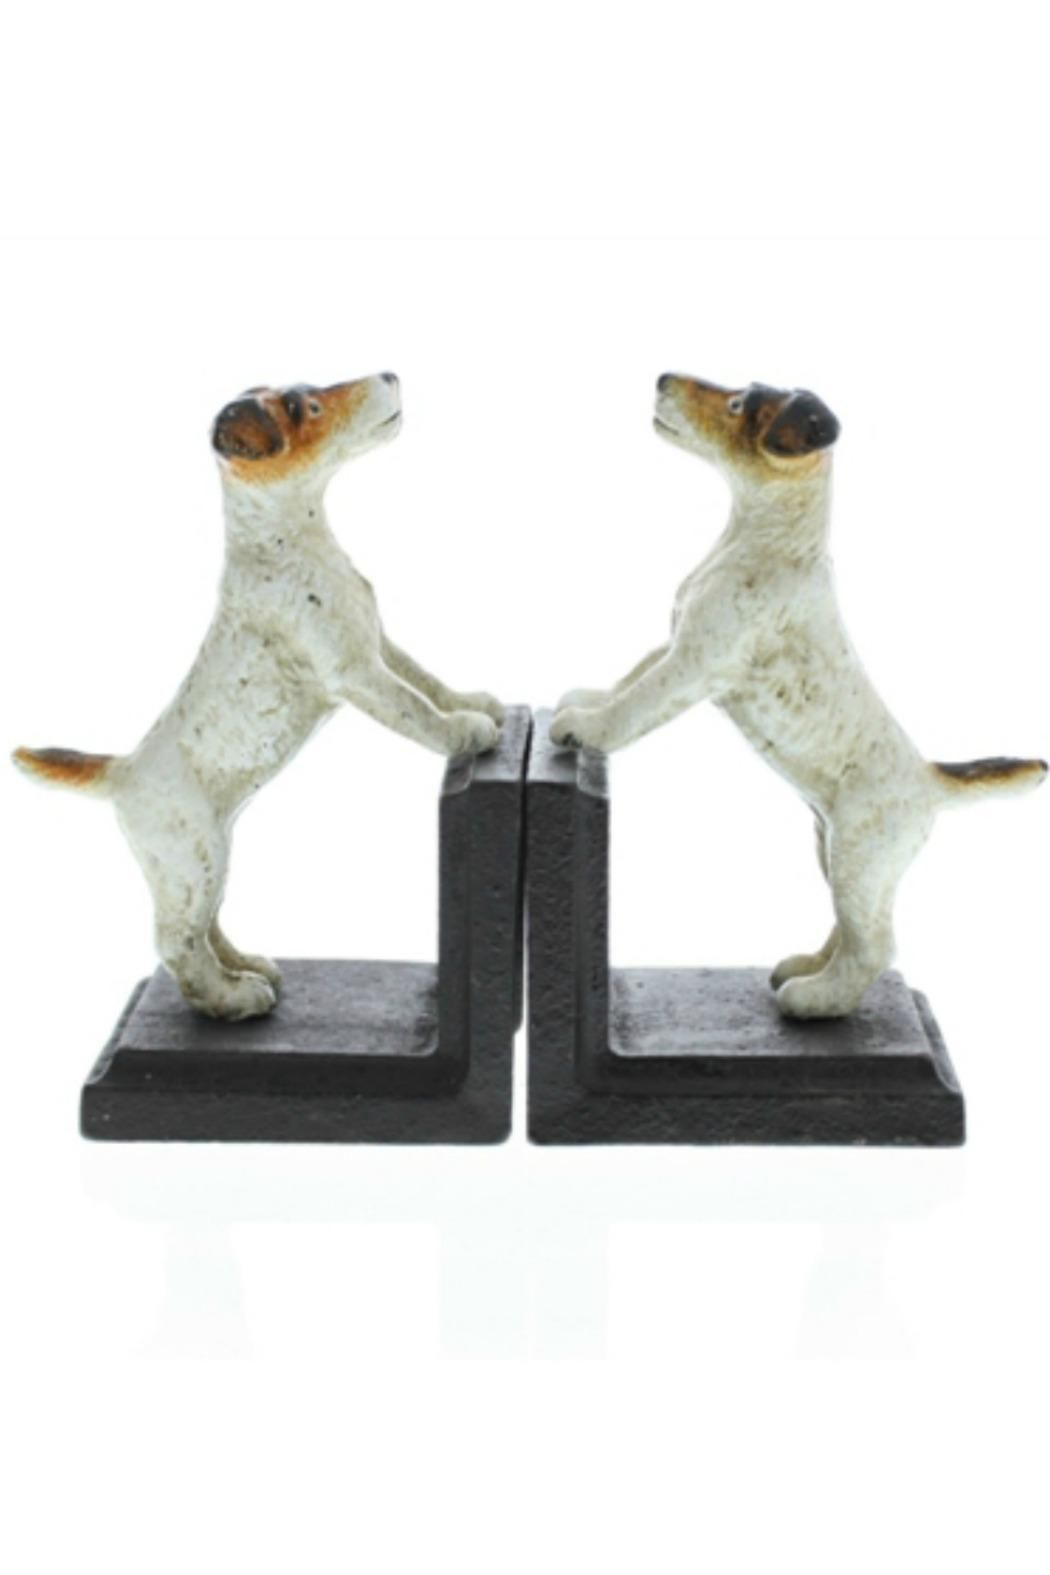 """These hand-painted cast iron bookends capture the energy & spirit of Jack Russell terriers - yet functional for keeping your books neat & organized!    Measures: 4"""" W x 3"""" D x 6"""" H each   Jack Russell Bookends by BUDD + FINN. Home & Gifts - Home Decor - Decorative Objects Portland, Oregon"""